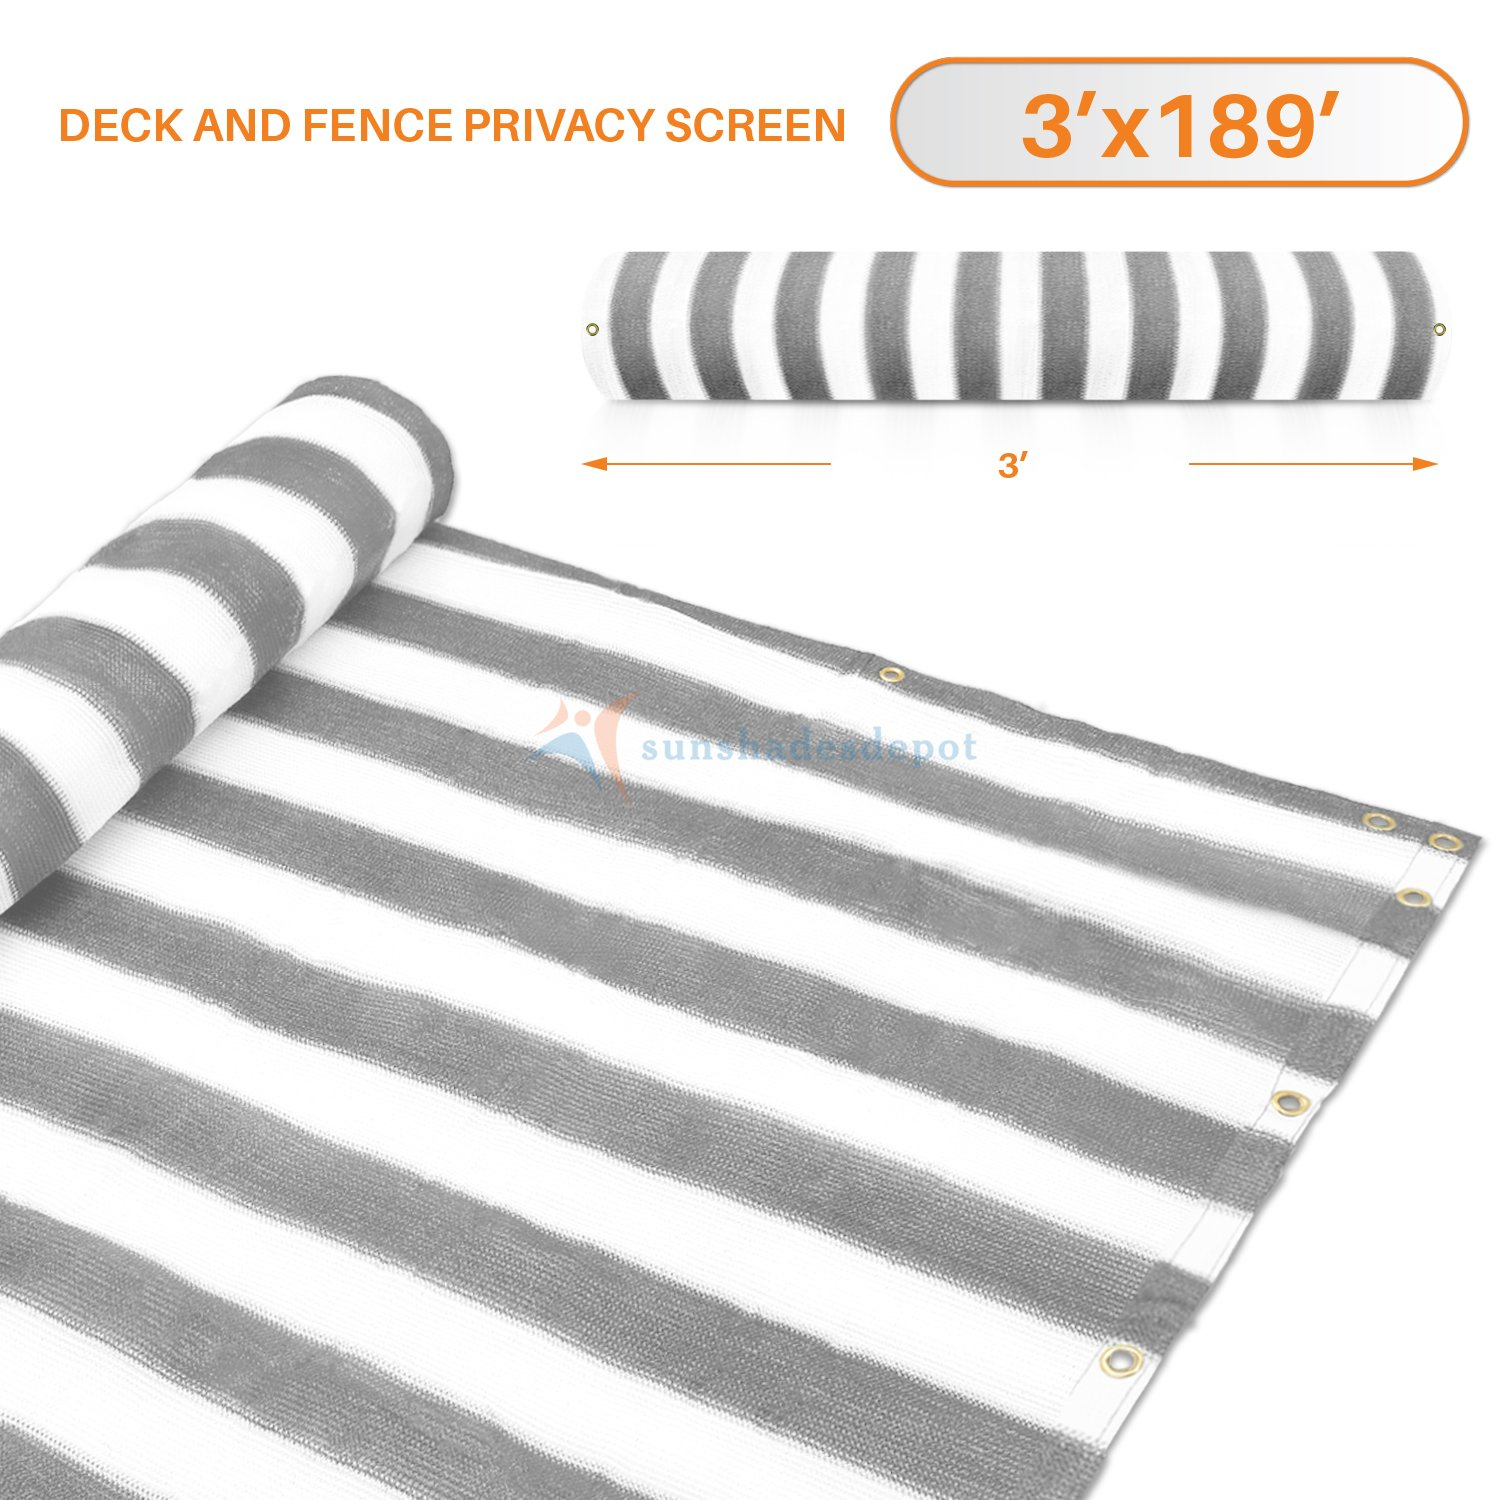 3' x 189' Gray (Grey) with White Stripes Residential Commercial Privacy Deck Fence Screen 160 GSM Weather Resistant Outdoor Protection Fencing Net for Balcony Verandah Porch Patio Pool Backyard Rails